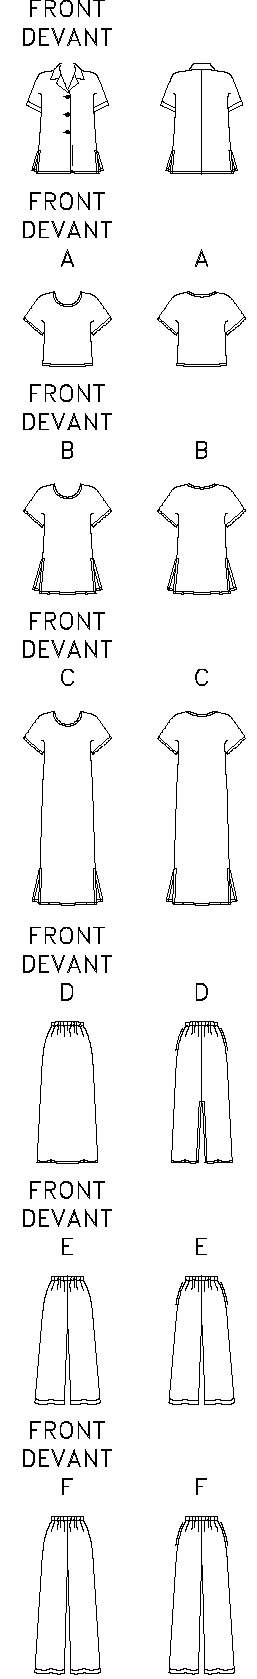 Loose-fitting shirt has collar and above-elbow sleeves with stitched hems. Loose-fitting, pullover top, tunic or above-ankle, A-line dress have cap sleeves. B,C: side slits. A-line skirt, above-ankle or loose-fitting, straight-legged pants have elastic waist and side pockets. D: back slit. Shirt, A,B,C,D: narrow hem. E,F: stitched hem.